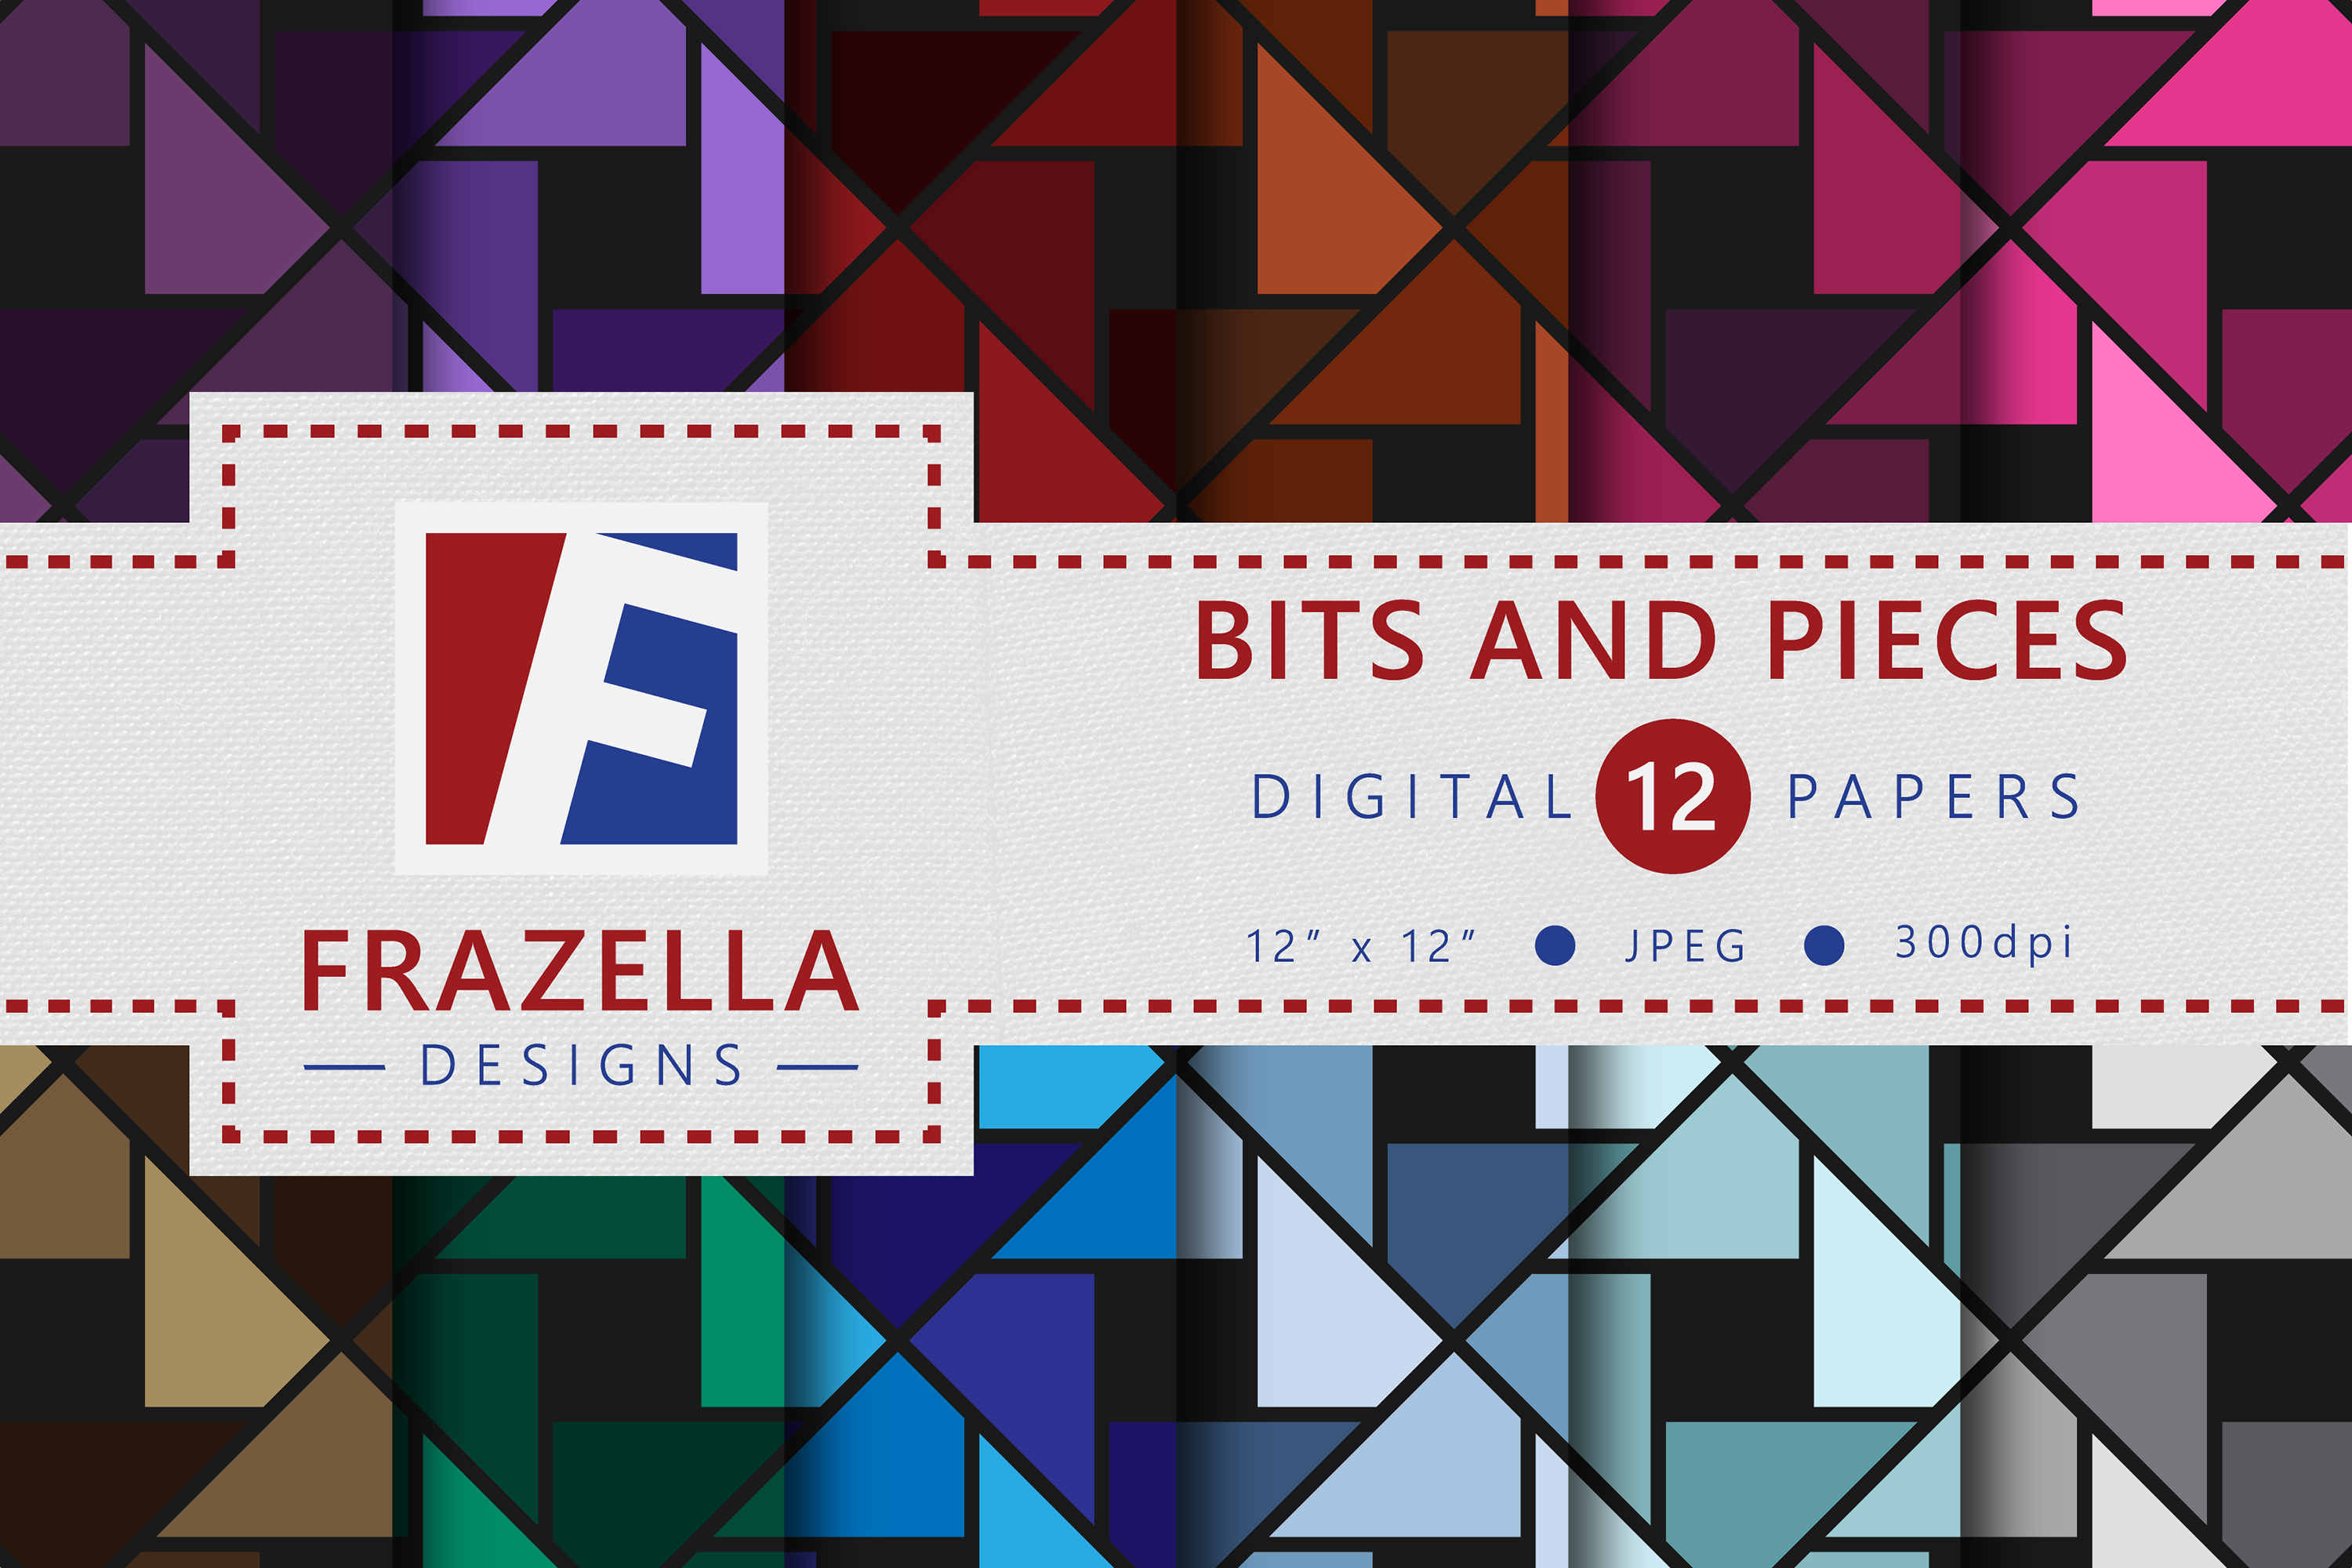 Download Free Bits And Pieces Digital Paper Collection Graphic By Frazella for Cricut Explore, Silhouette and other cutting machines.